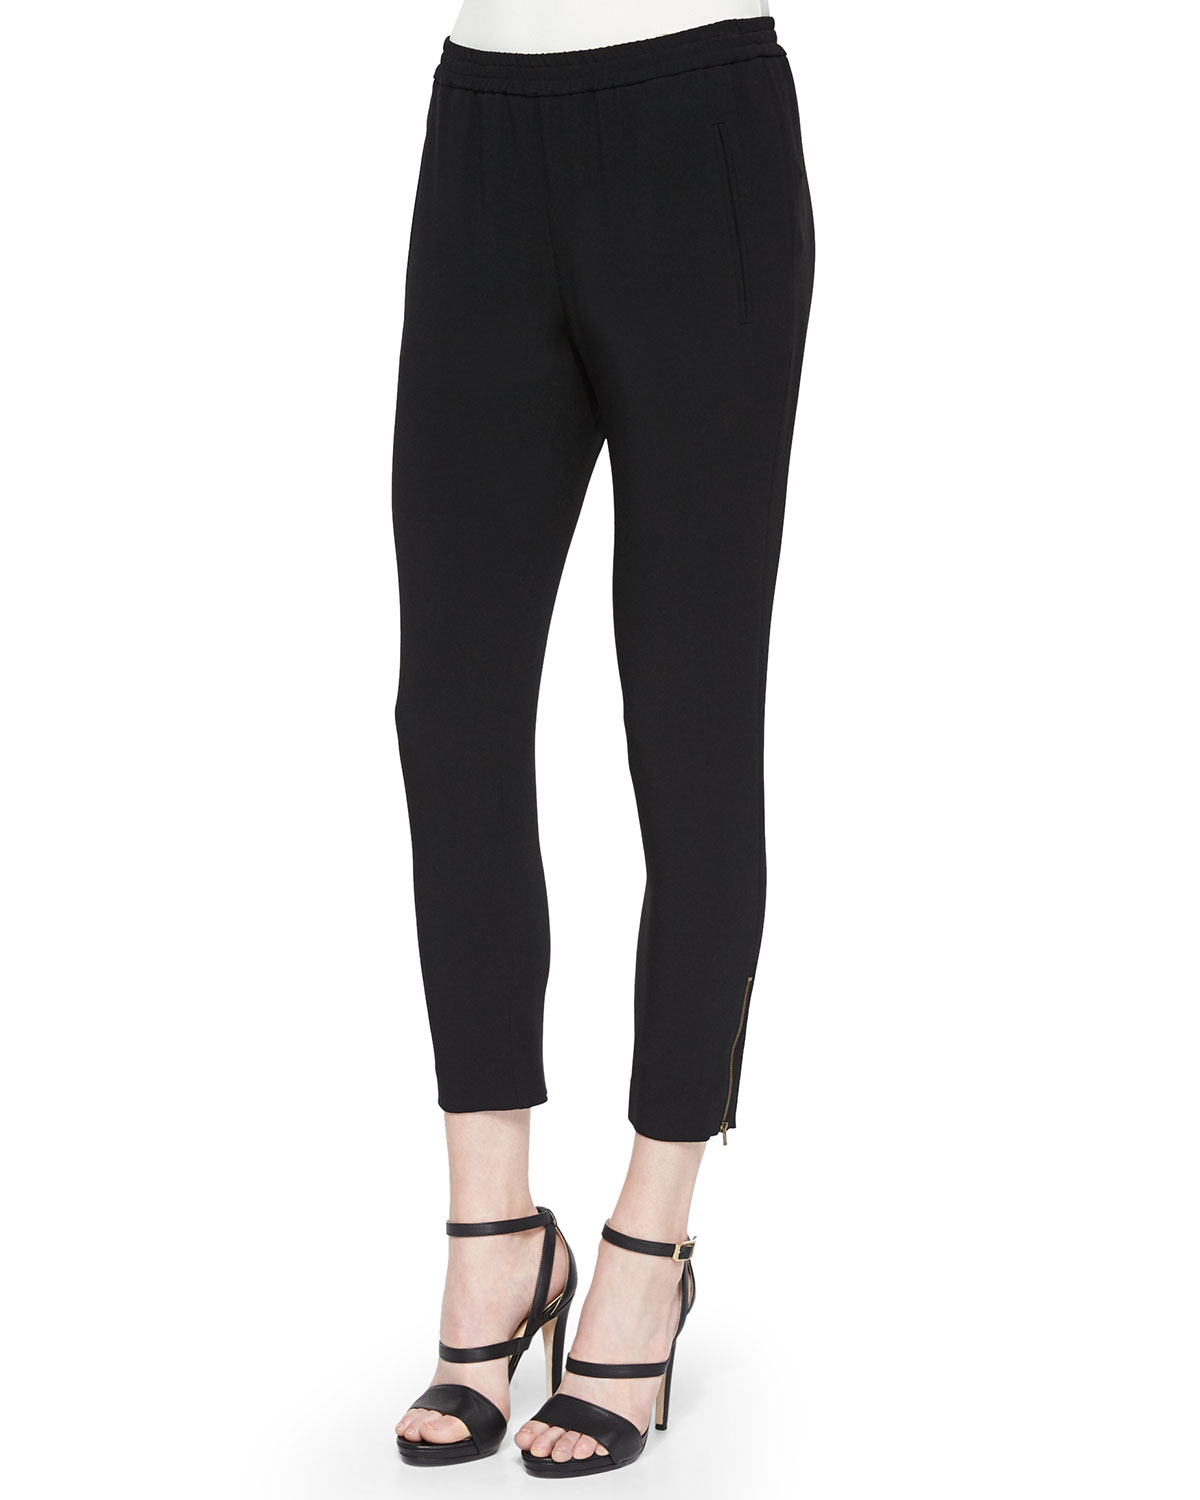 Shop womens elastic waist pants at Neiman Marcus, where you will find free shipping on the latest in fashion from top designers. Skip To Main Content. Etro Largo Wool High-Waist Wide-Leg Pants, Black Details Etro